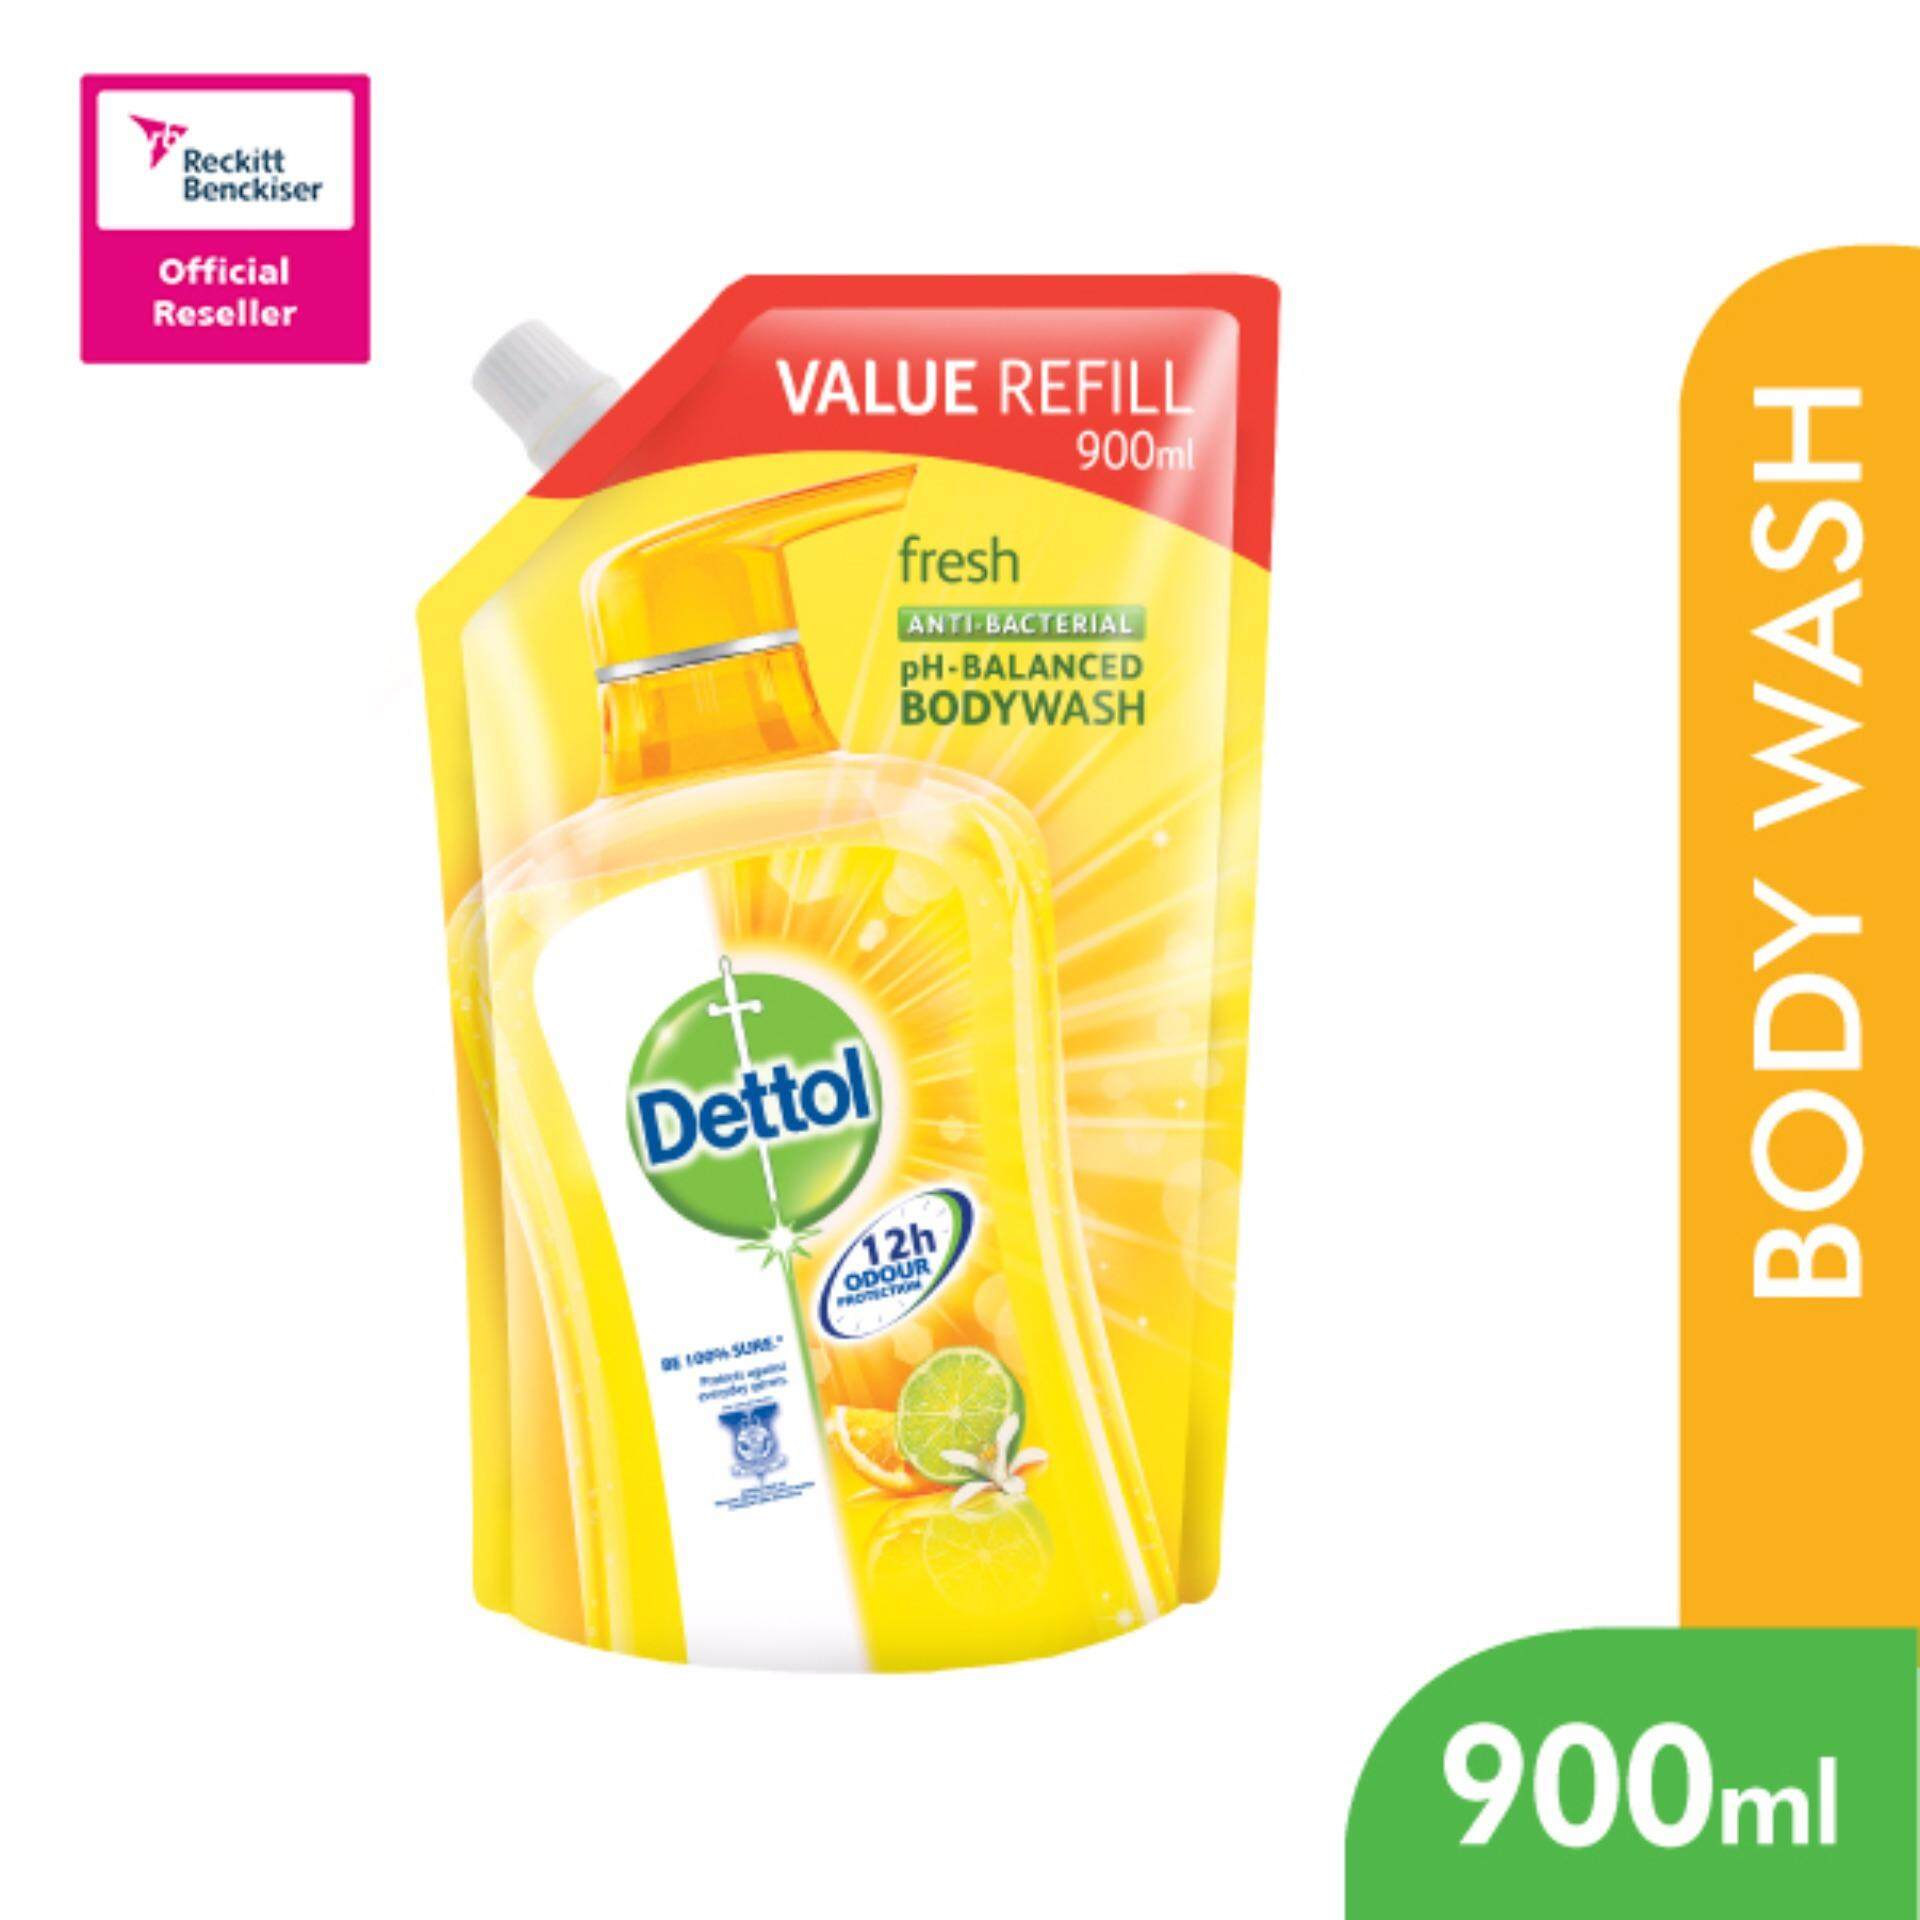 Promo Dettol Hand Wash Re Energize 200 Ml Pouch 2 Pcs Terbaru 2018 Sensitive Sell Bodywash Fresh Cheapest Best Quality My Store